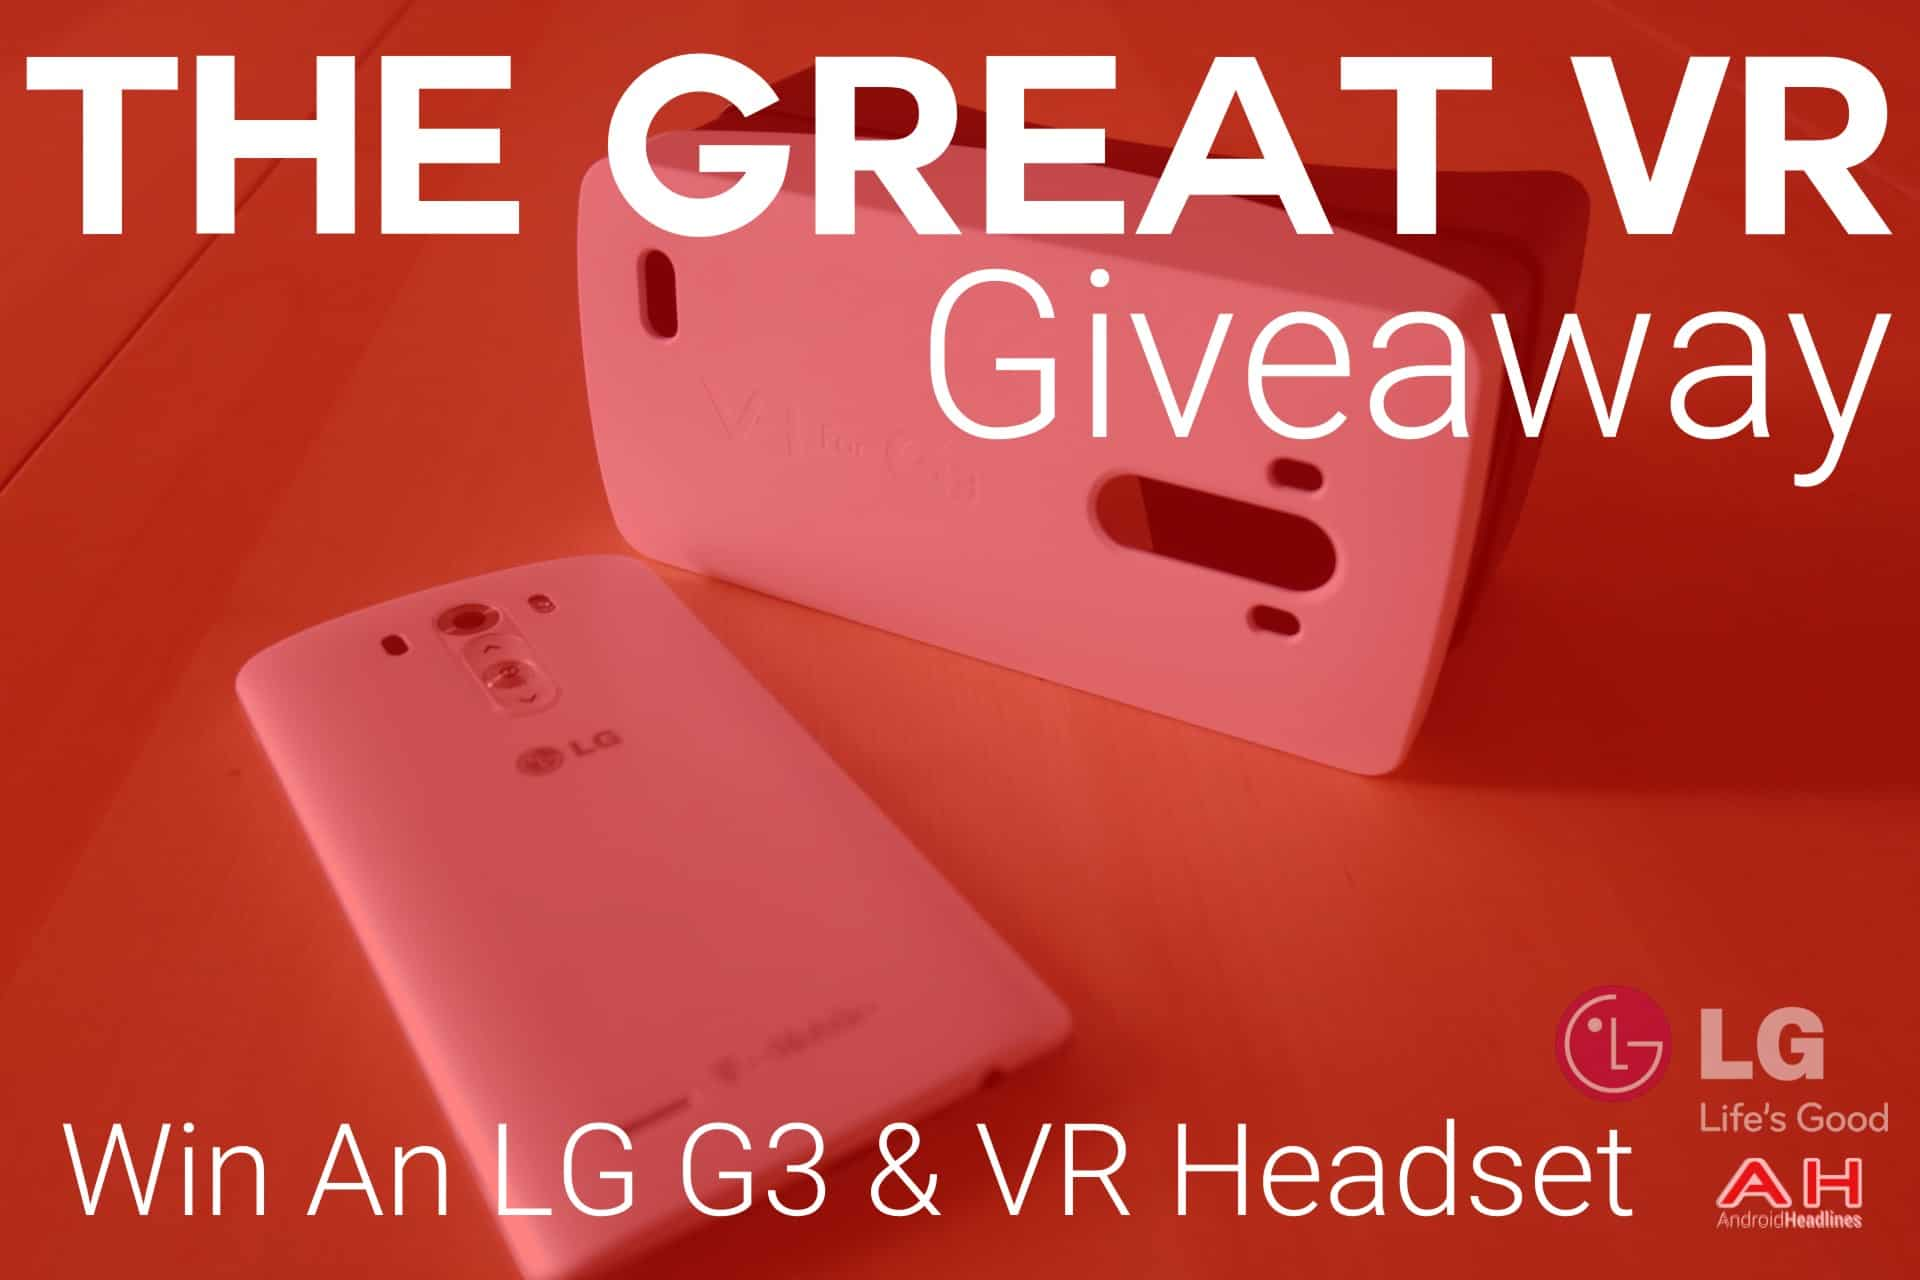 AH LG G3 VR Headset Giveaway Contest